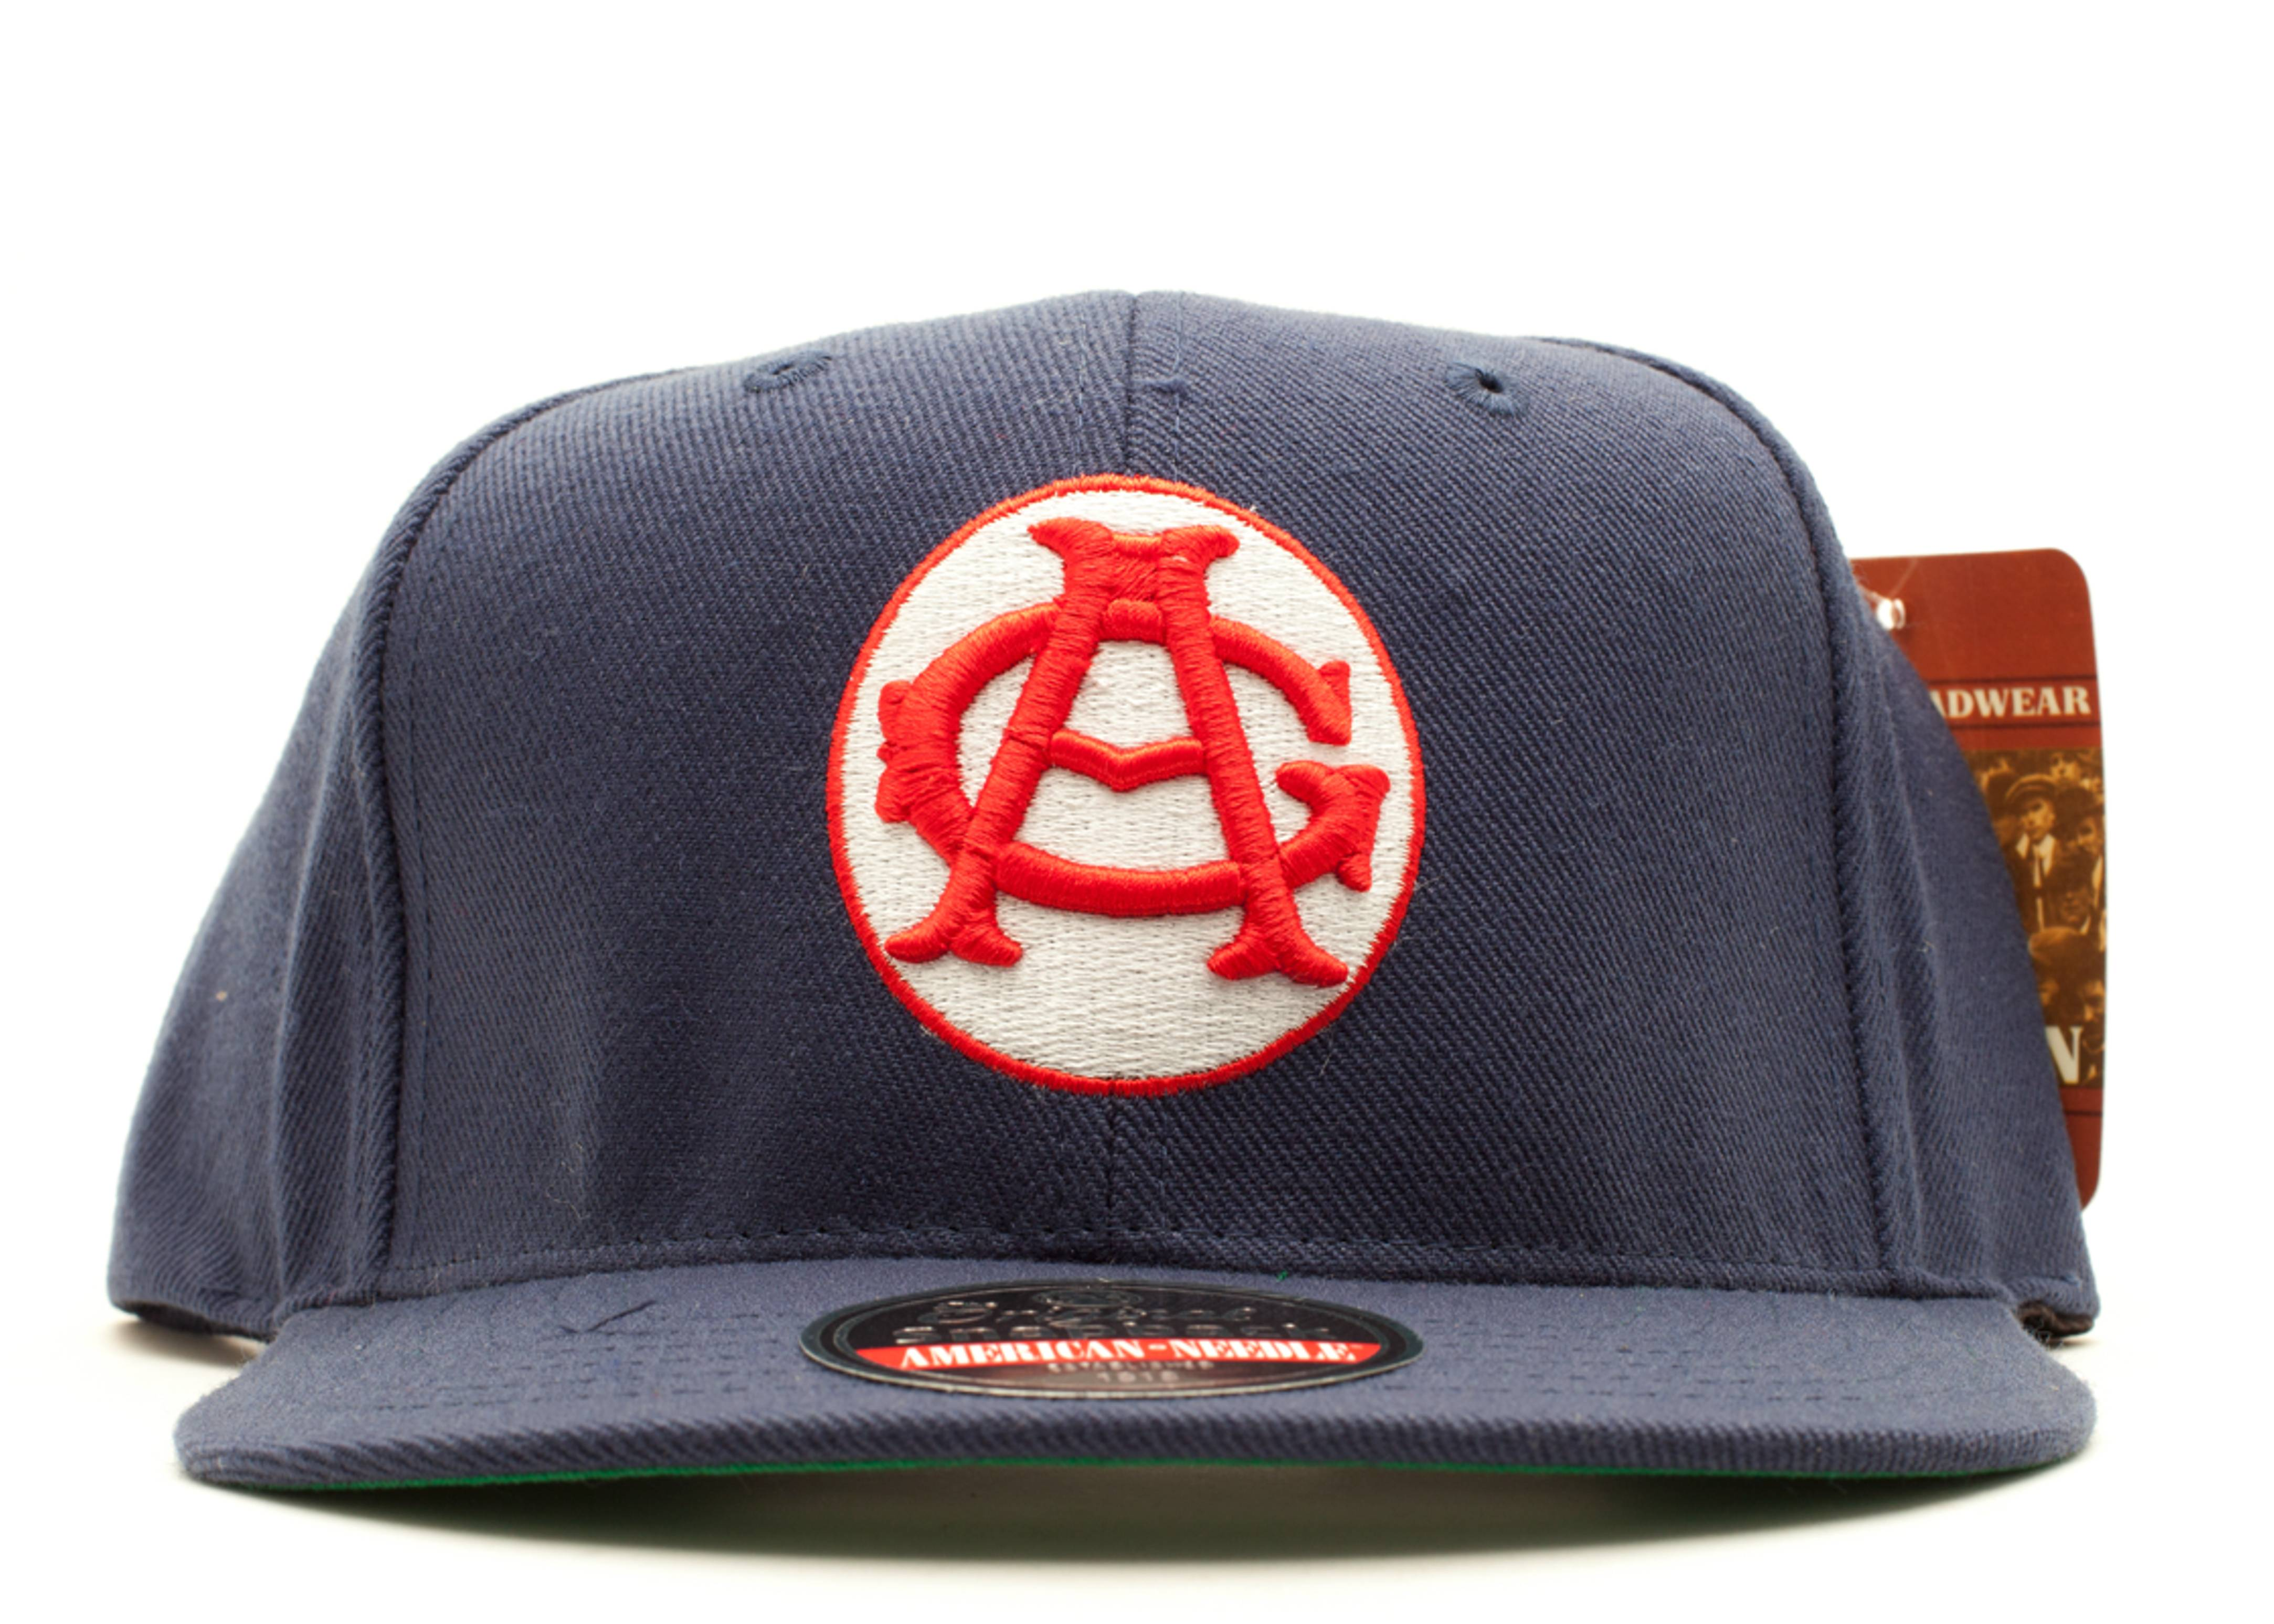 chicago american giants snap-back